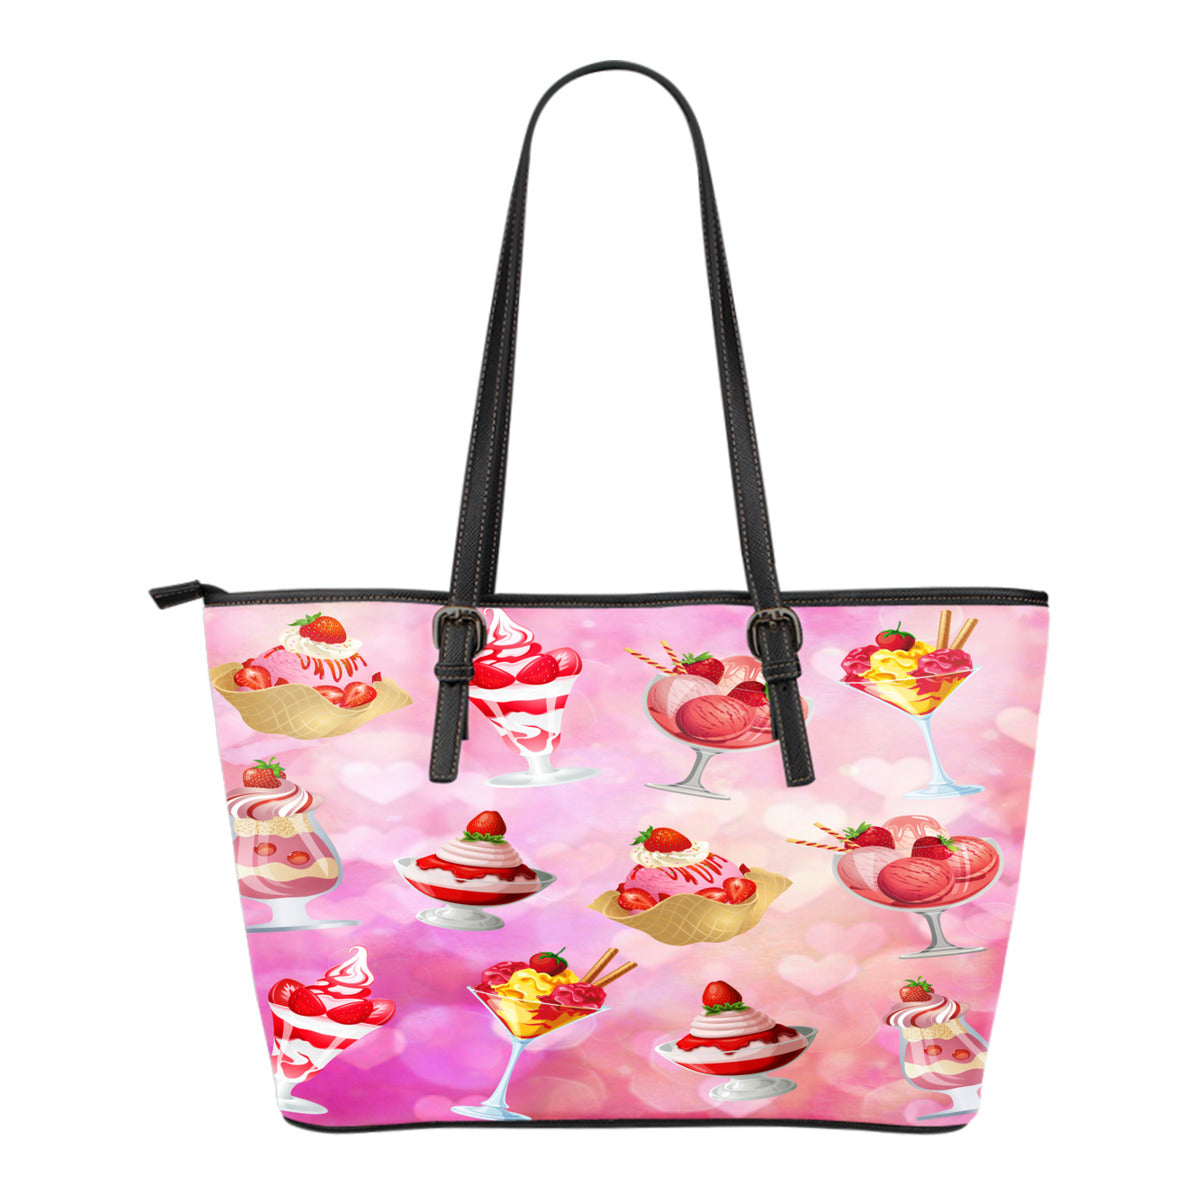 Ice Cream Themed Design C8 Women Small Leather Tote Bag